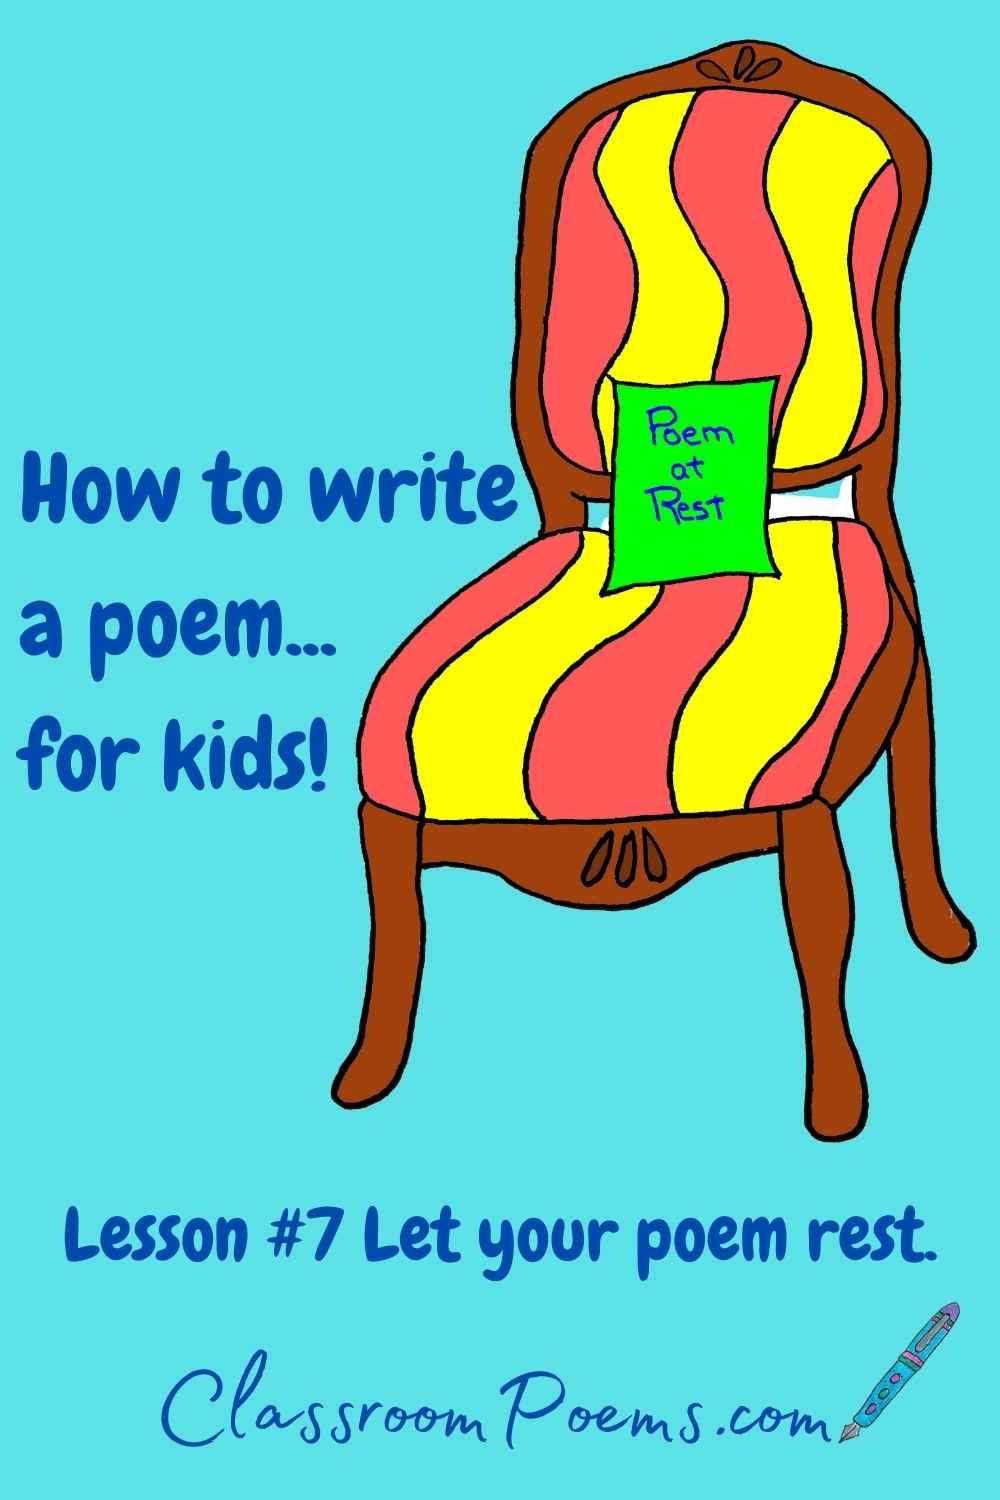 How to teach poetry to kids. Let your poem rest.